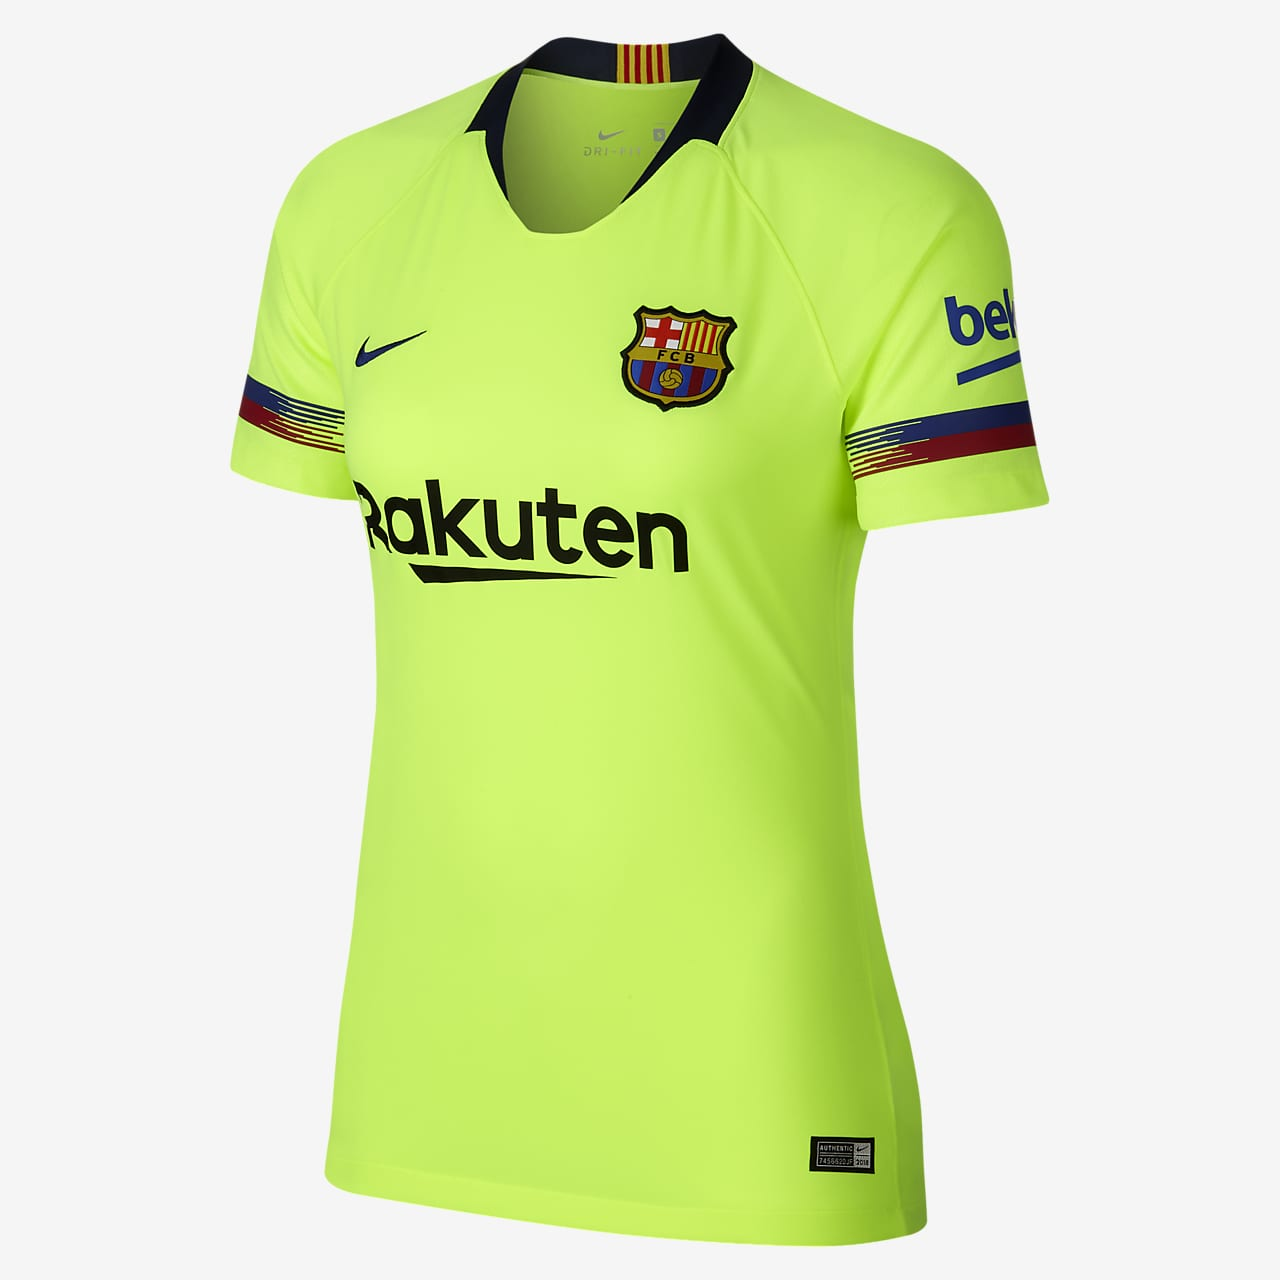 2018/19 FC Barcelona Stadium Away fotballdrakt for dame